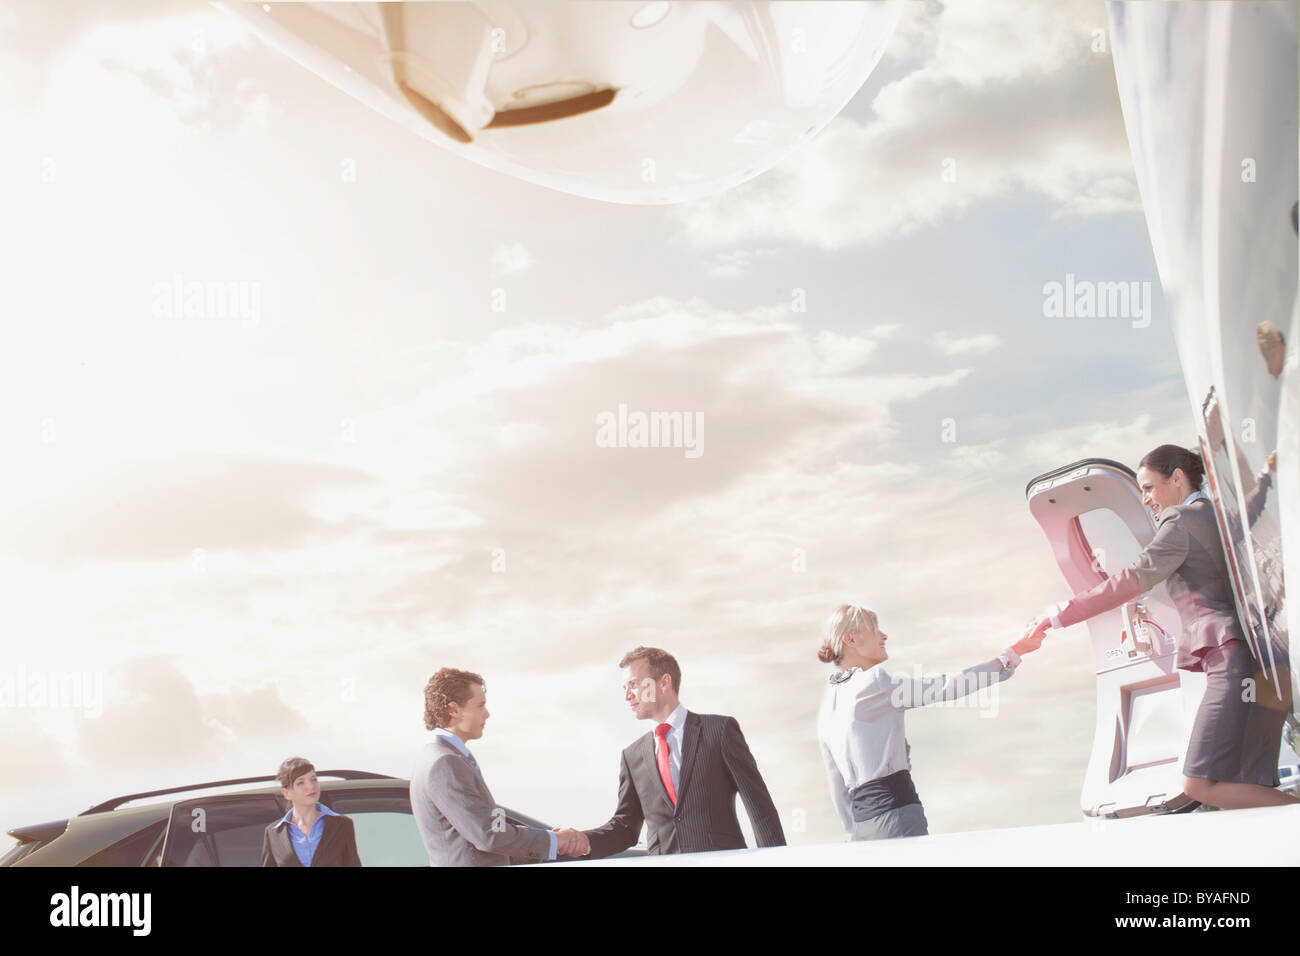 Team of business executives - Stock Image